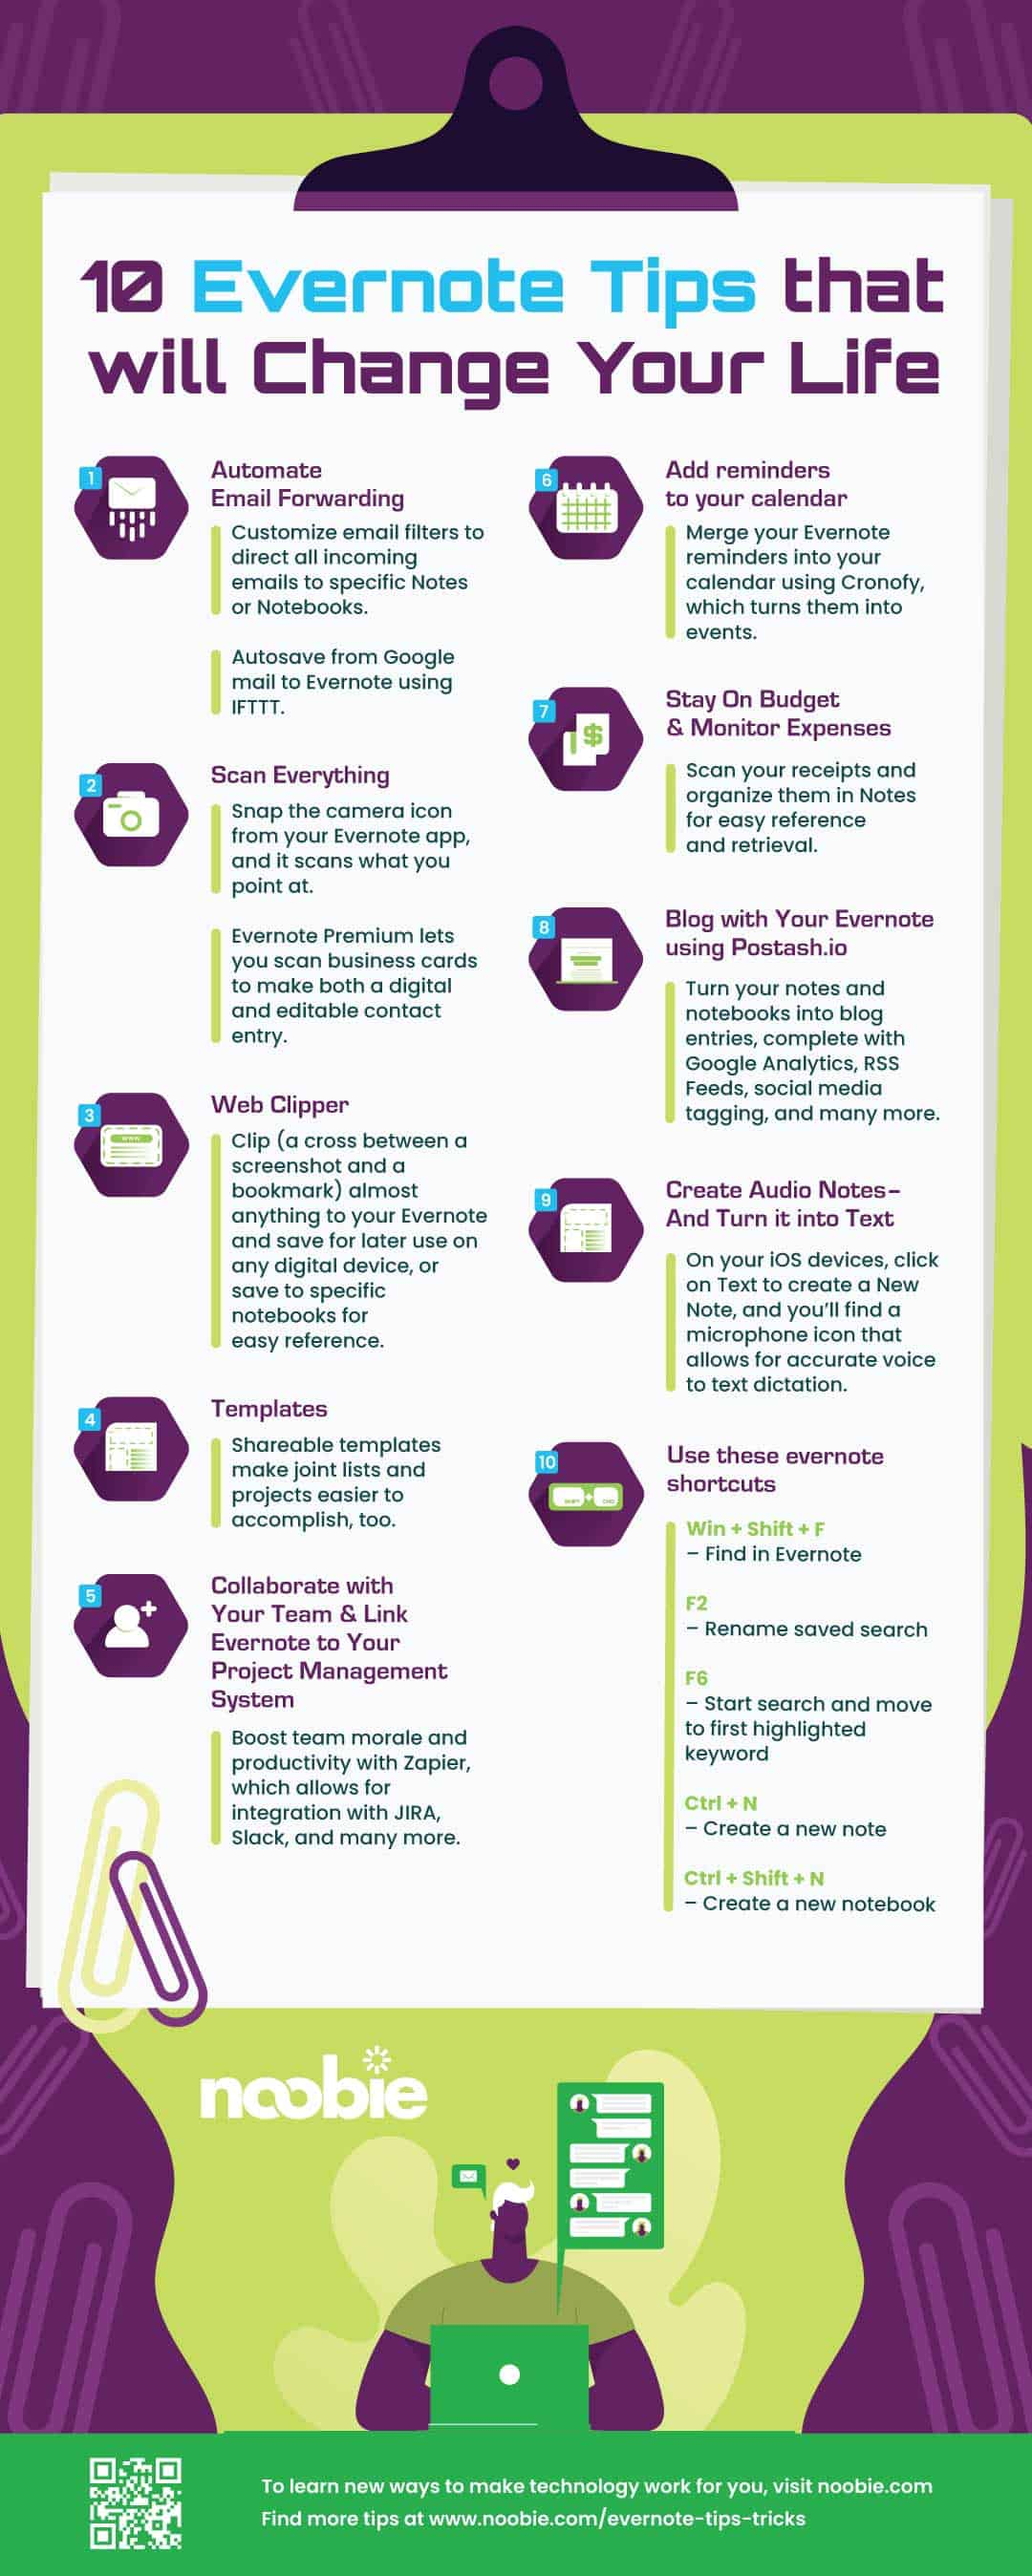 10 Evernote Tips & Tricks You Should Master [INFOGRAPHIC]